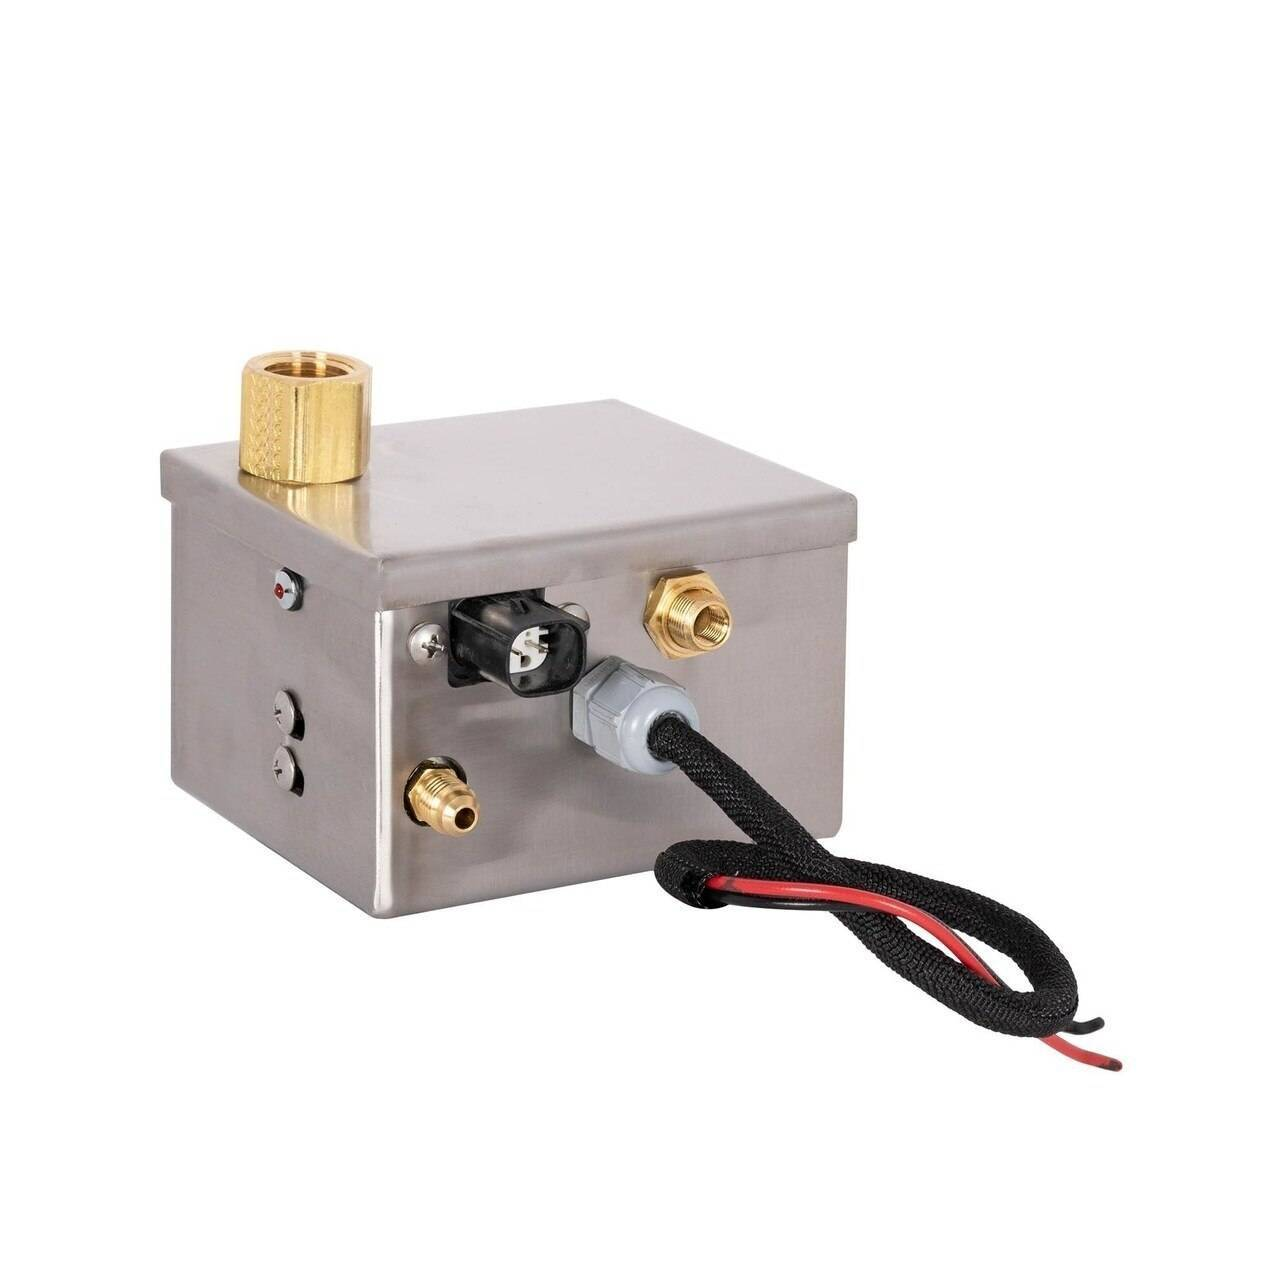 12v Mini Capacity Electronic Ignition System - The Outdoor Plus